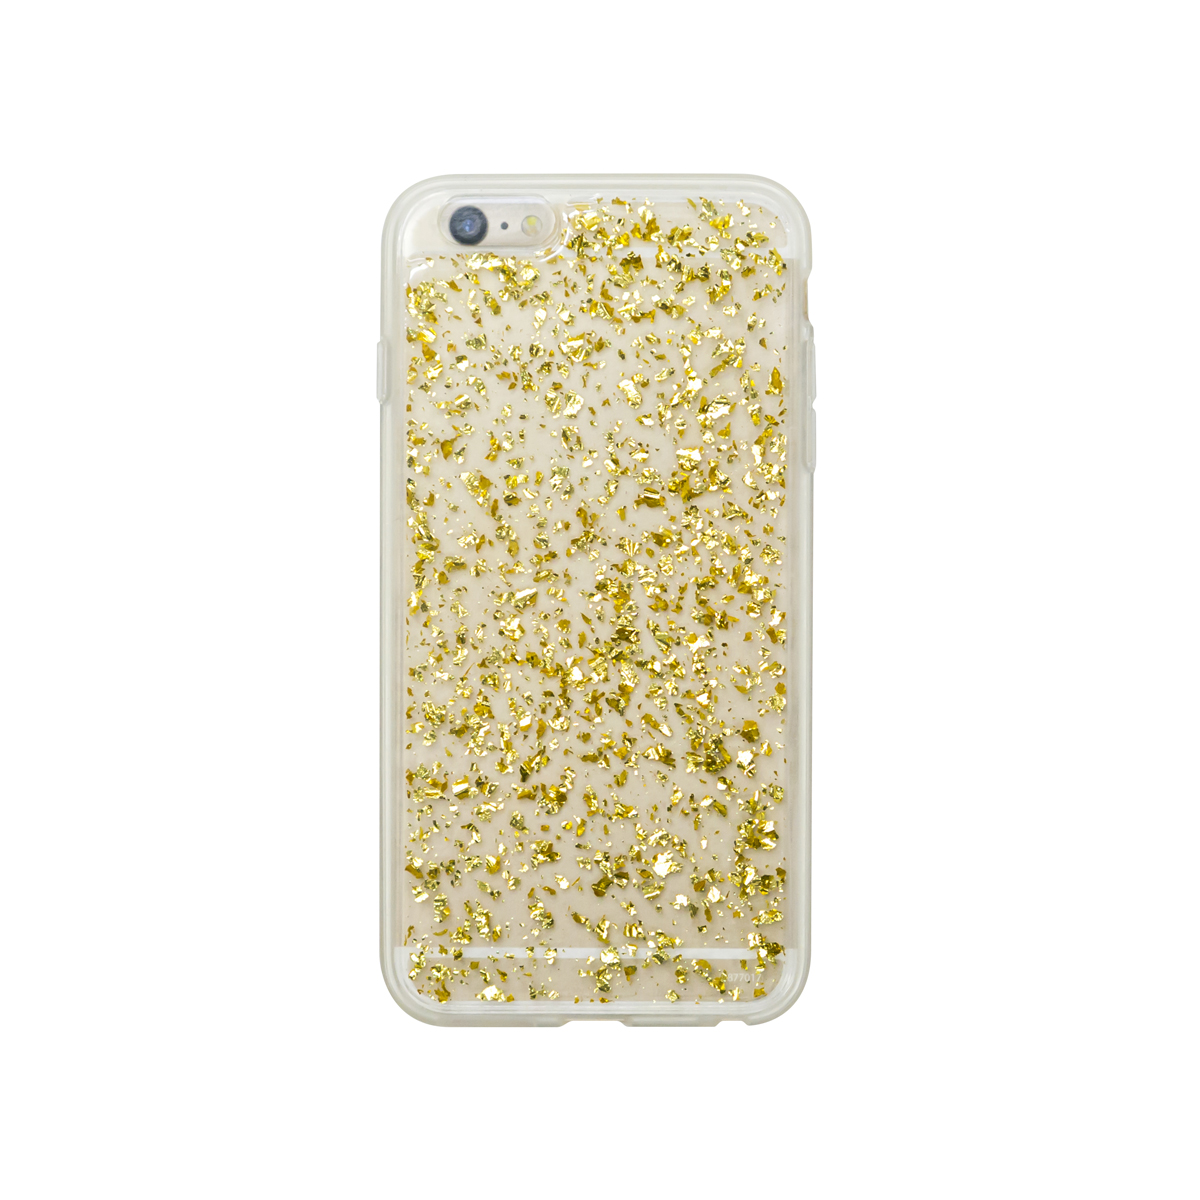 Onn Clear Case With Gold Flecks For Iphone 6 Plus/6S Plus